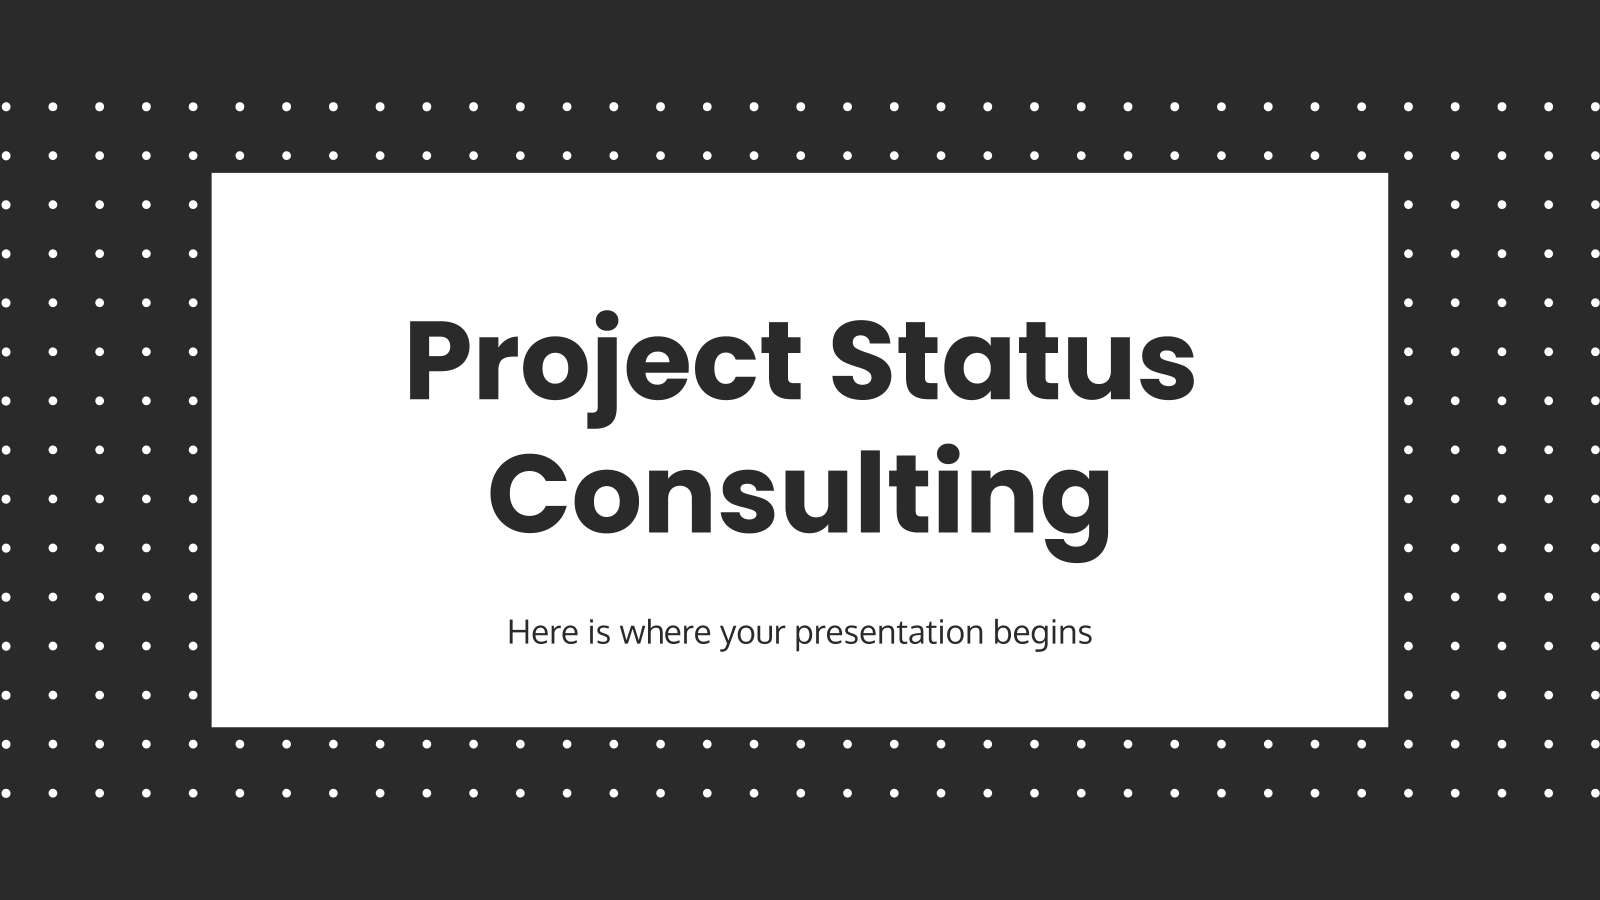 Project Status Consulting presentation template